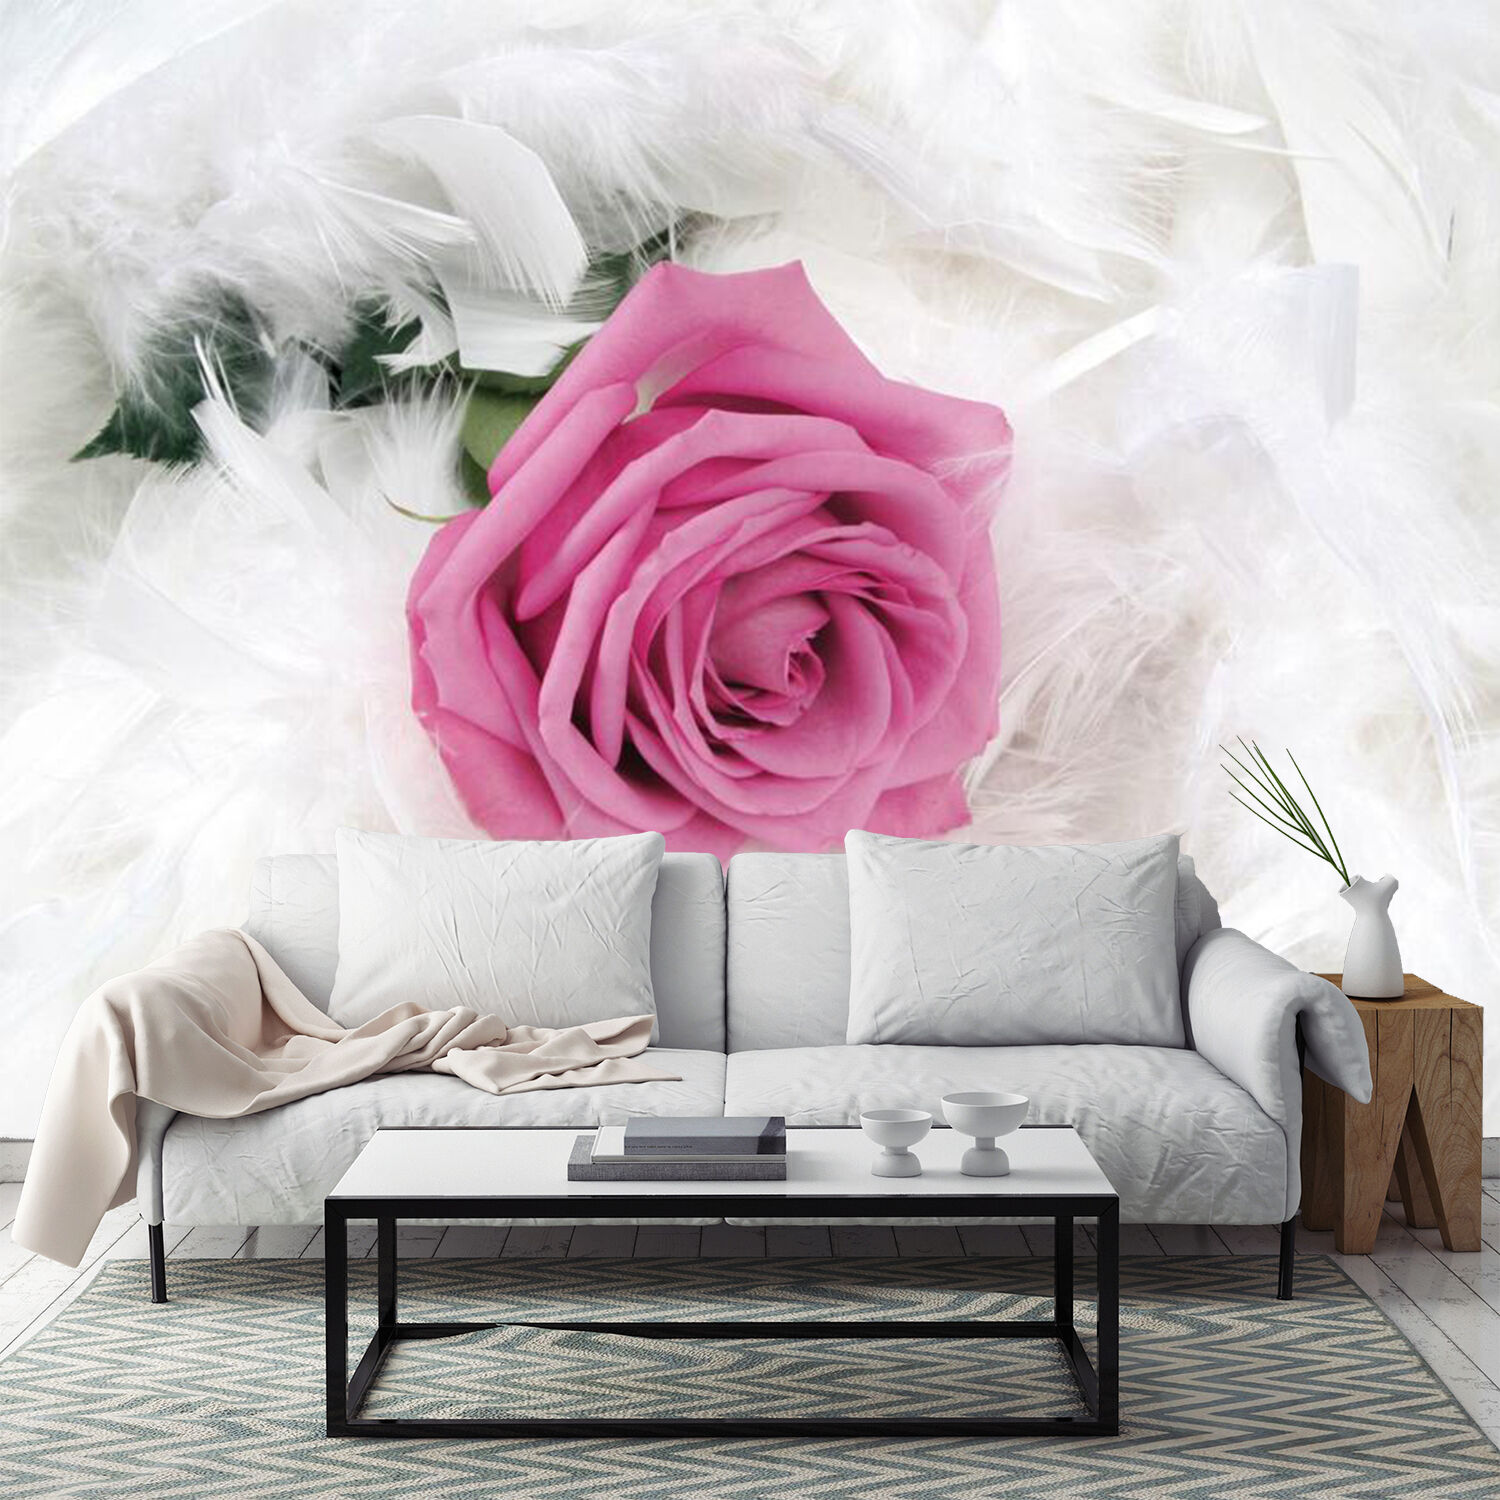 3D Snowy lila Rose 242 Wall Paper Wall Print Decal Wall Deco Indoor Wall